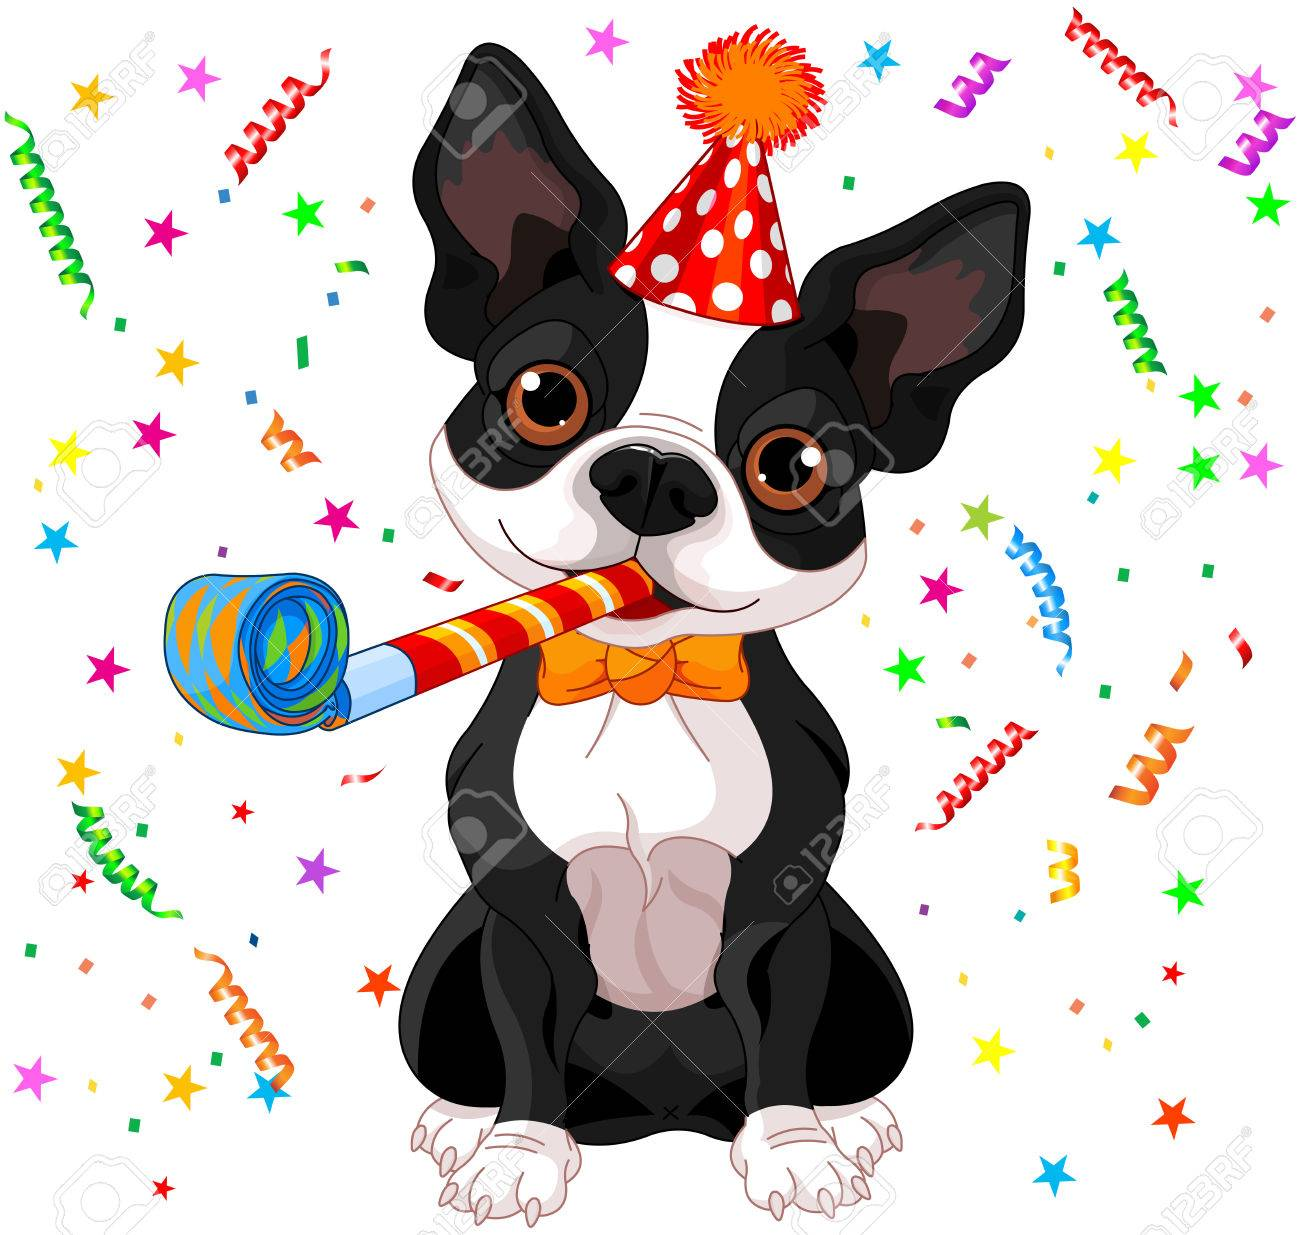 Education chaton - Page 3 35588778-illustration-of-cute-boston-terrier-celebrating